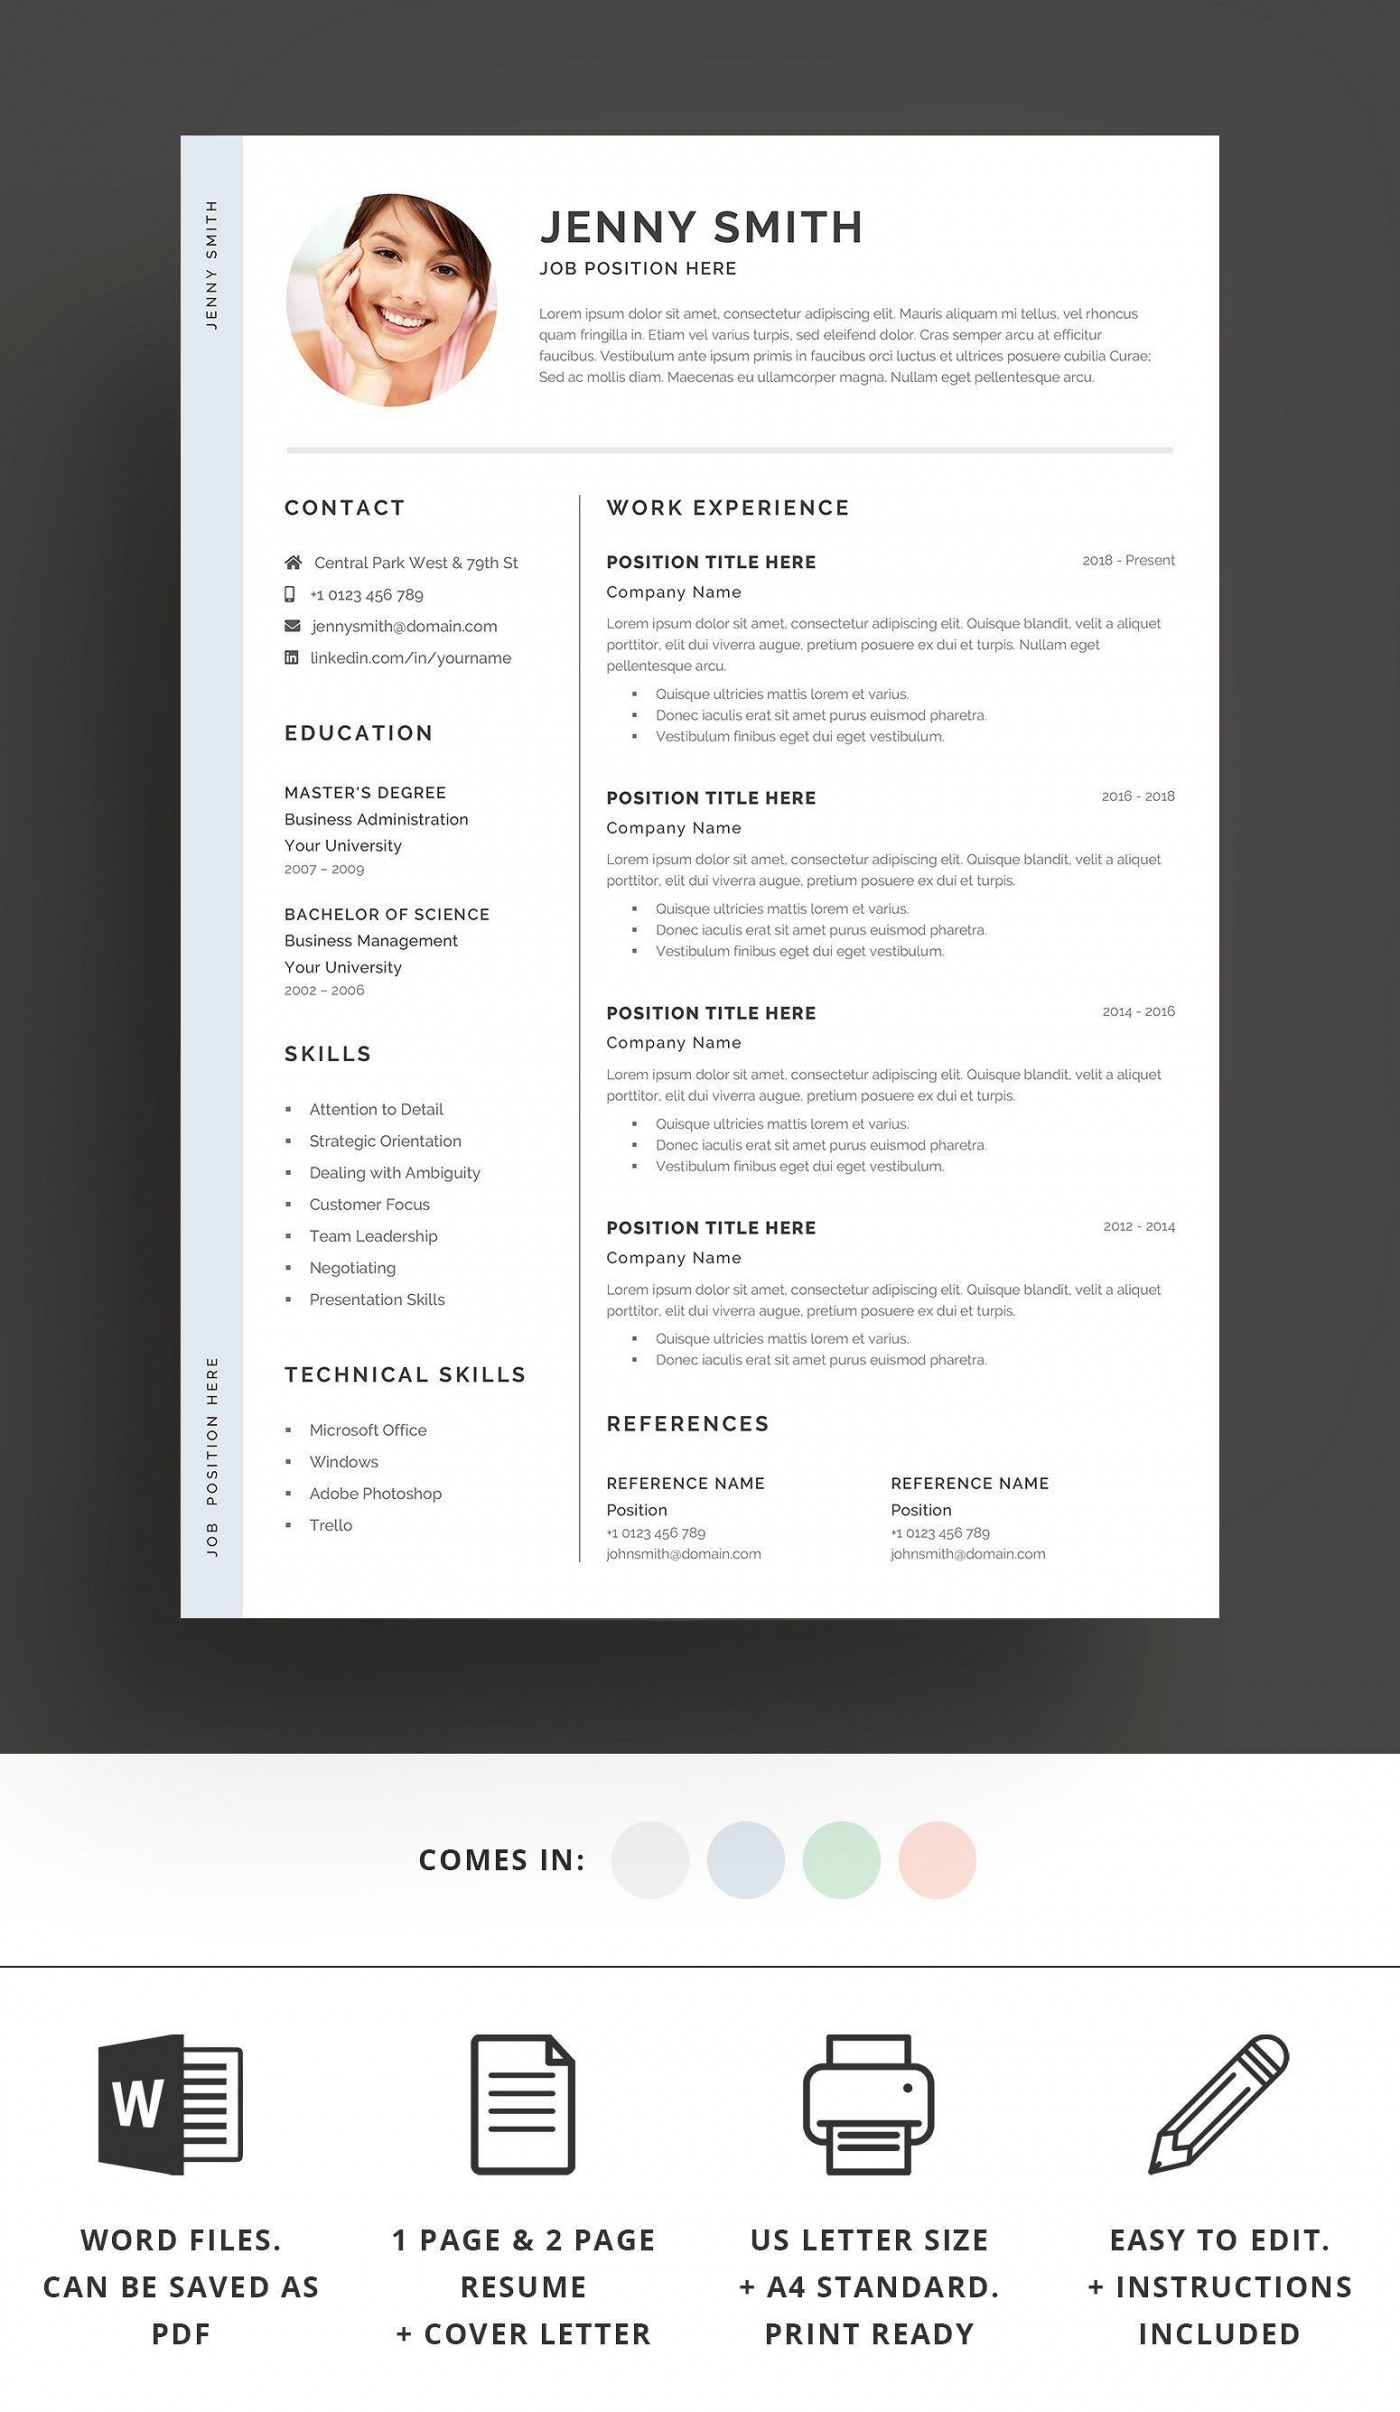 002 Top Resume Template Word 2016 High Definition  Cv Microsoft Download Free1400